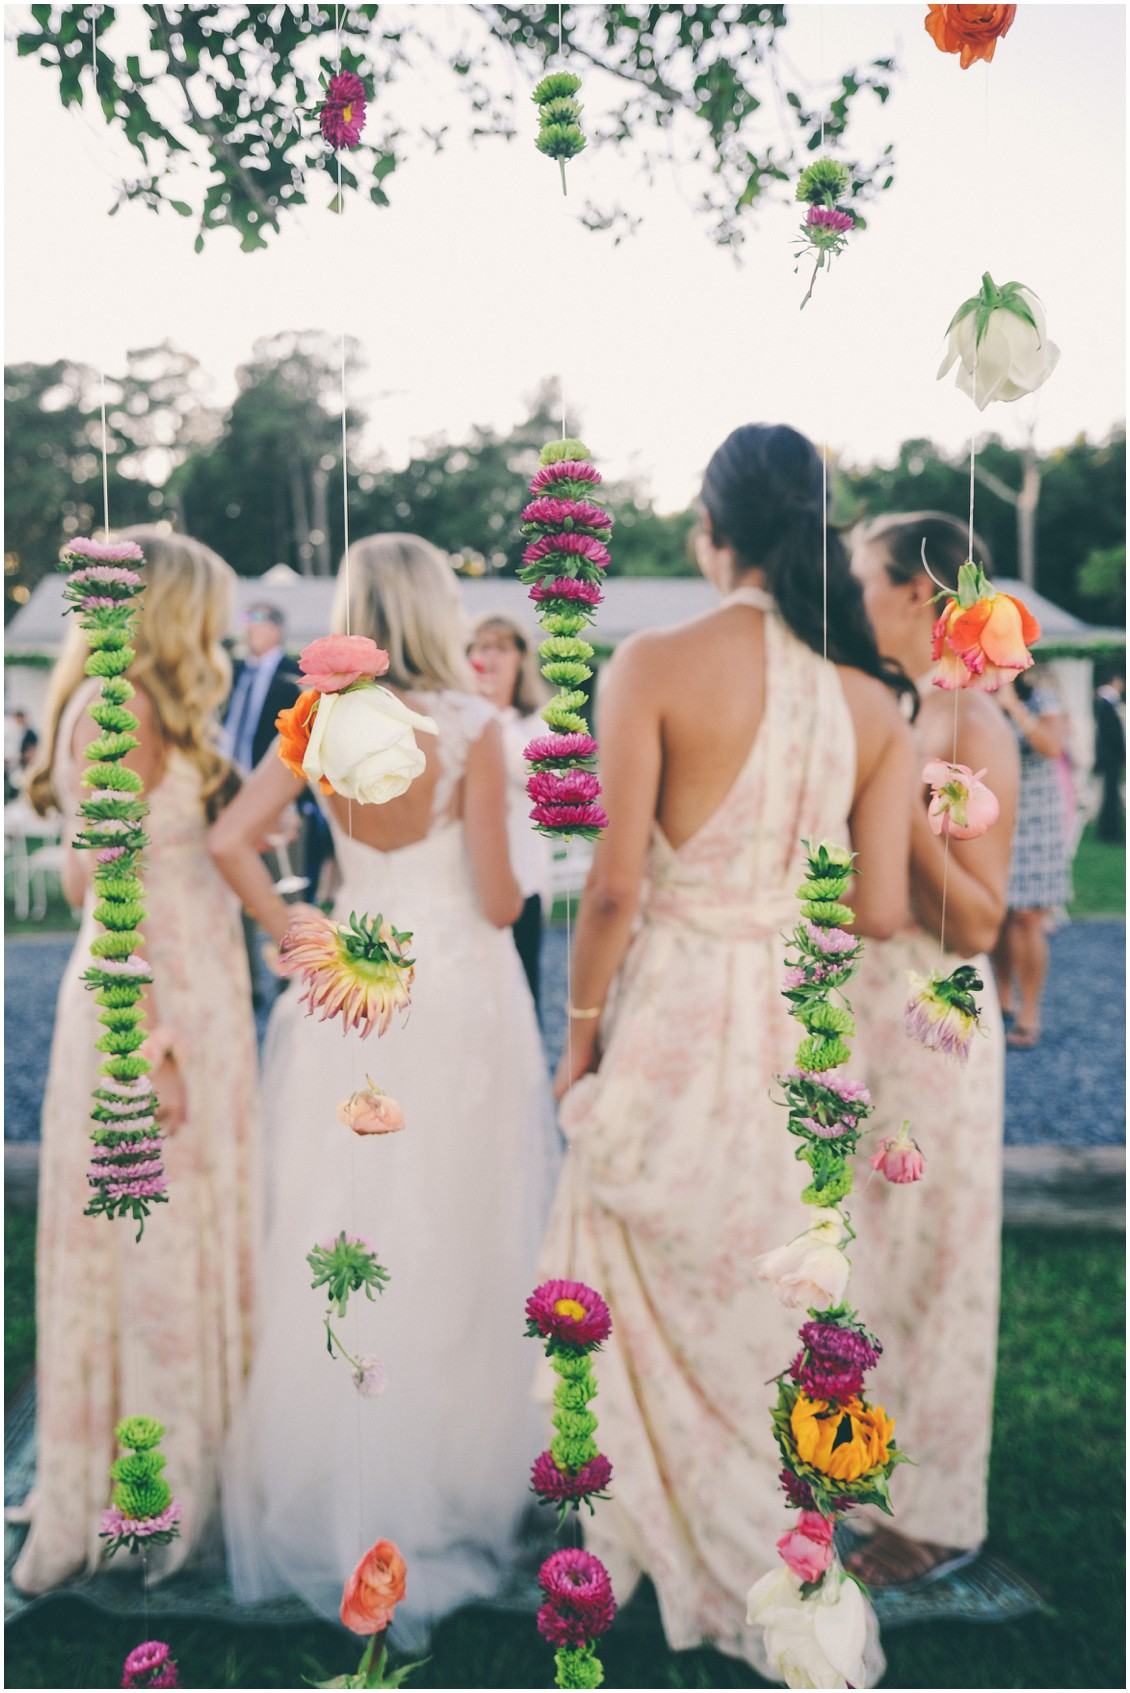 Vibrant, multi-colored hanging flowers by Flowers by Alison. | My Eastern Shore Wedding |